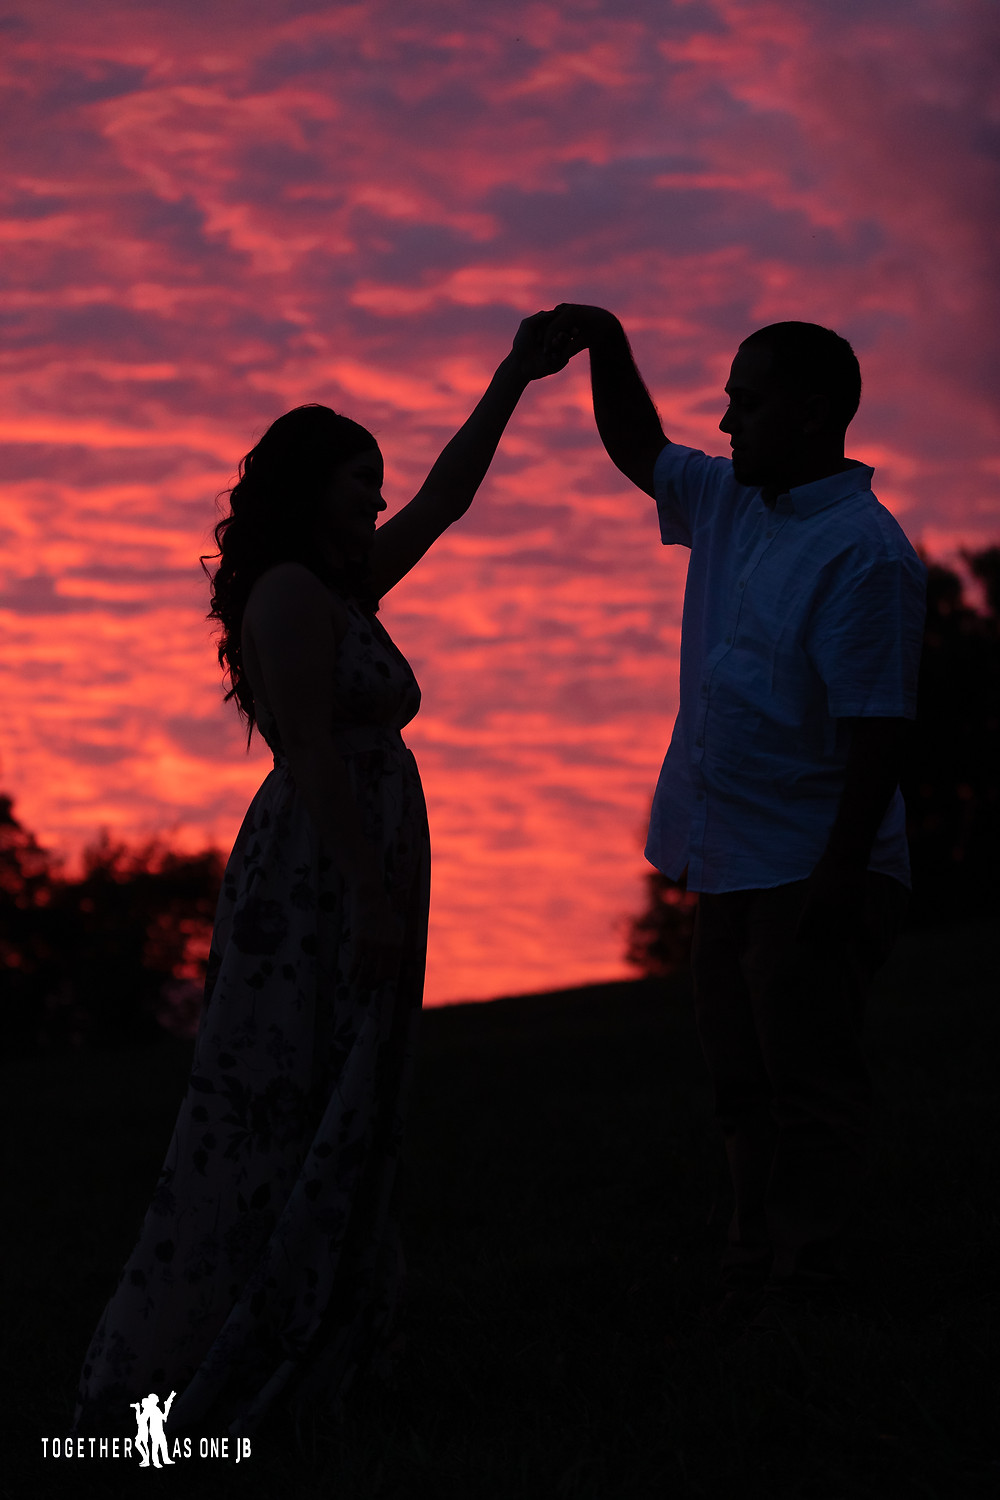 Twirl the bride sunset photo silhouette.  A beautiful photograph taken by Together As One JB of a recently engaged couple twirling the fiancé during sunset.